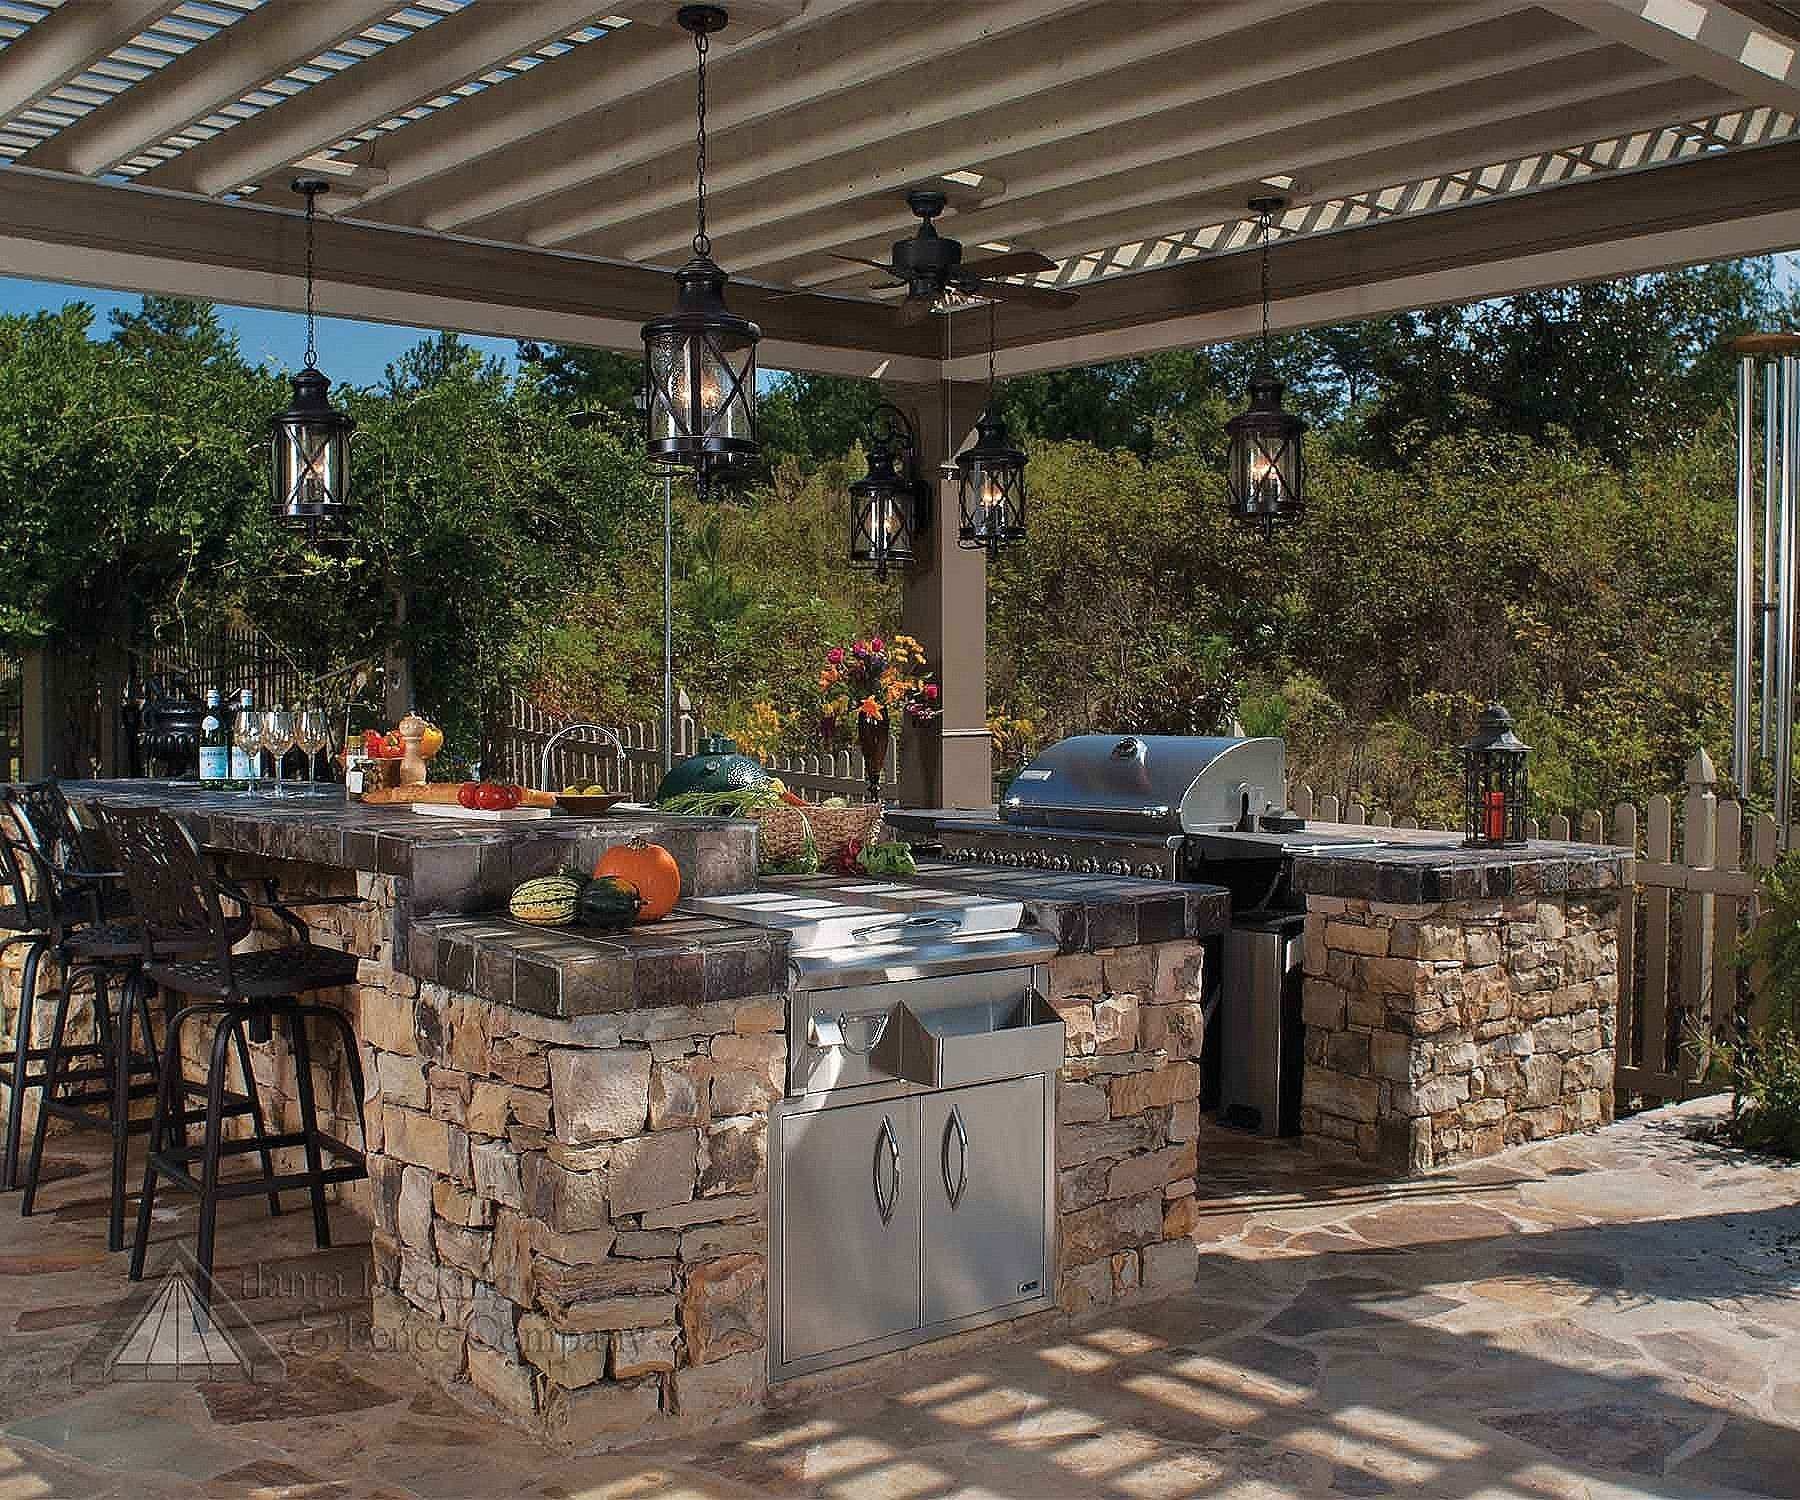 Lantern Shaped Hanging Outdoor Pendant Lights In An Outdoor Inside Outdoor Hanging Lights For Pergola (View 12 of 15)